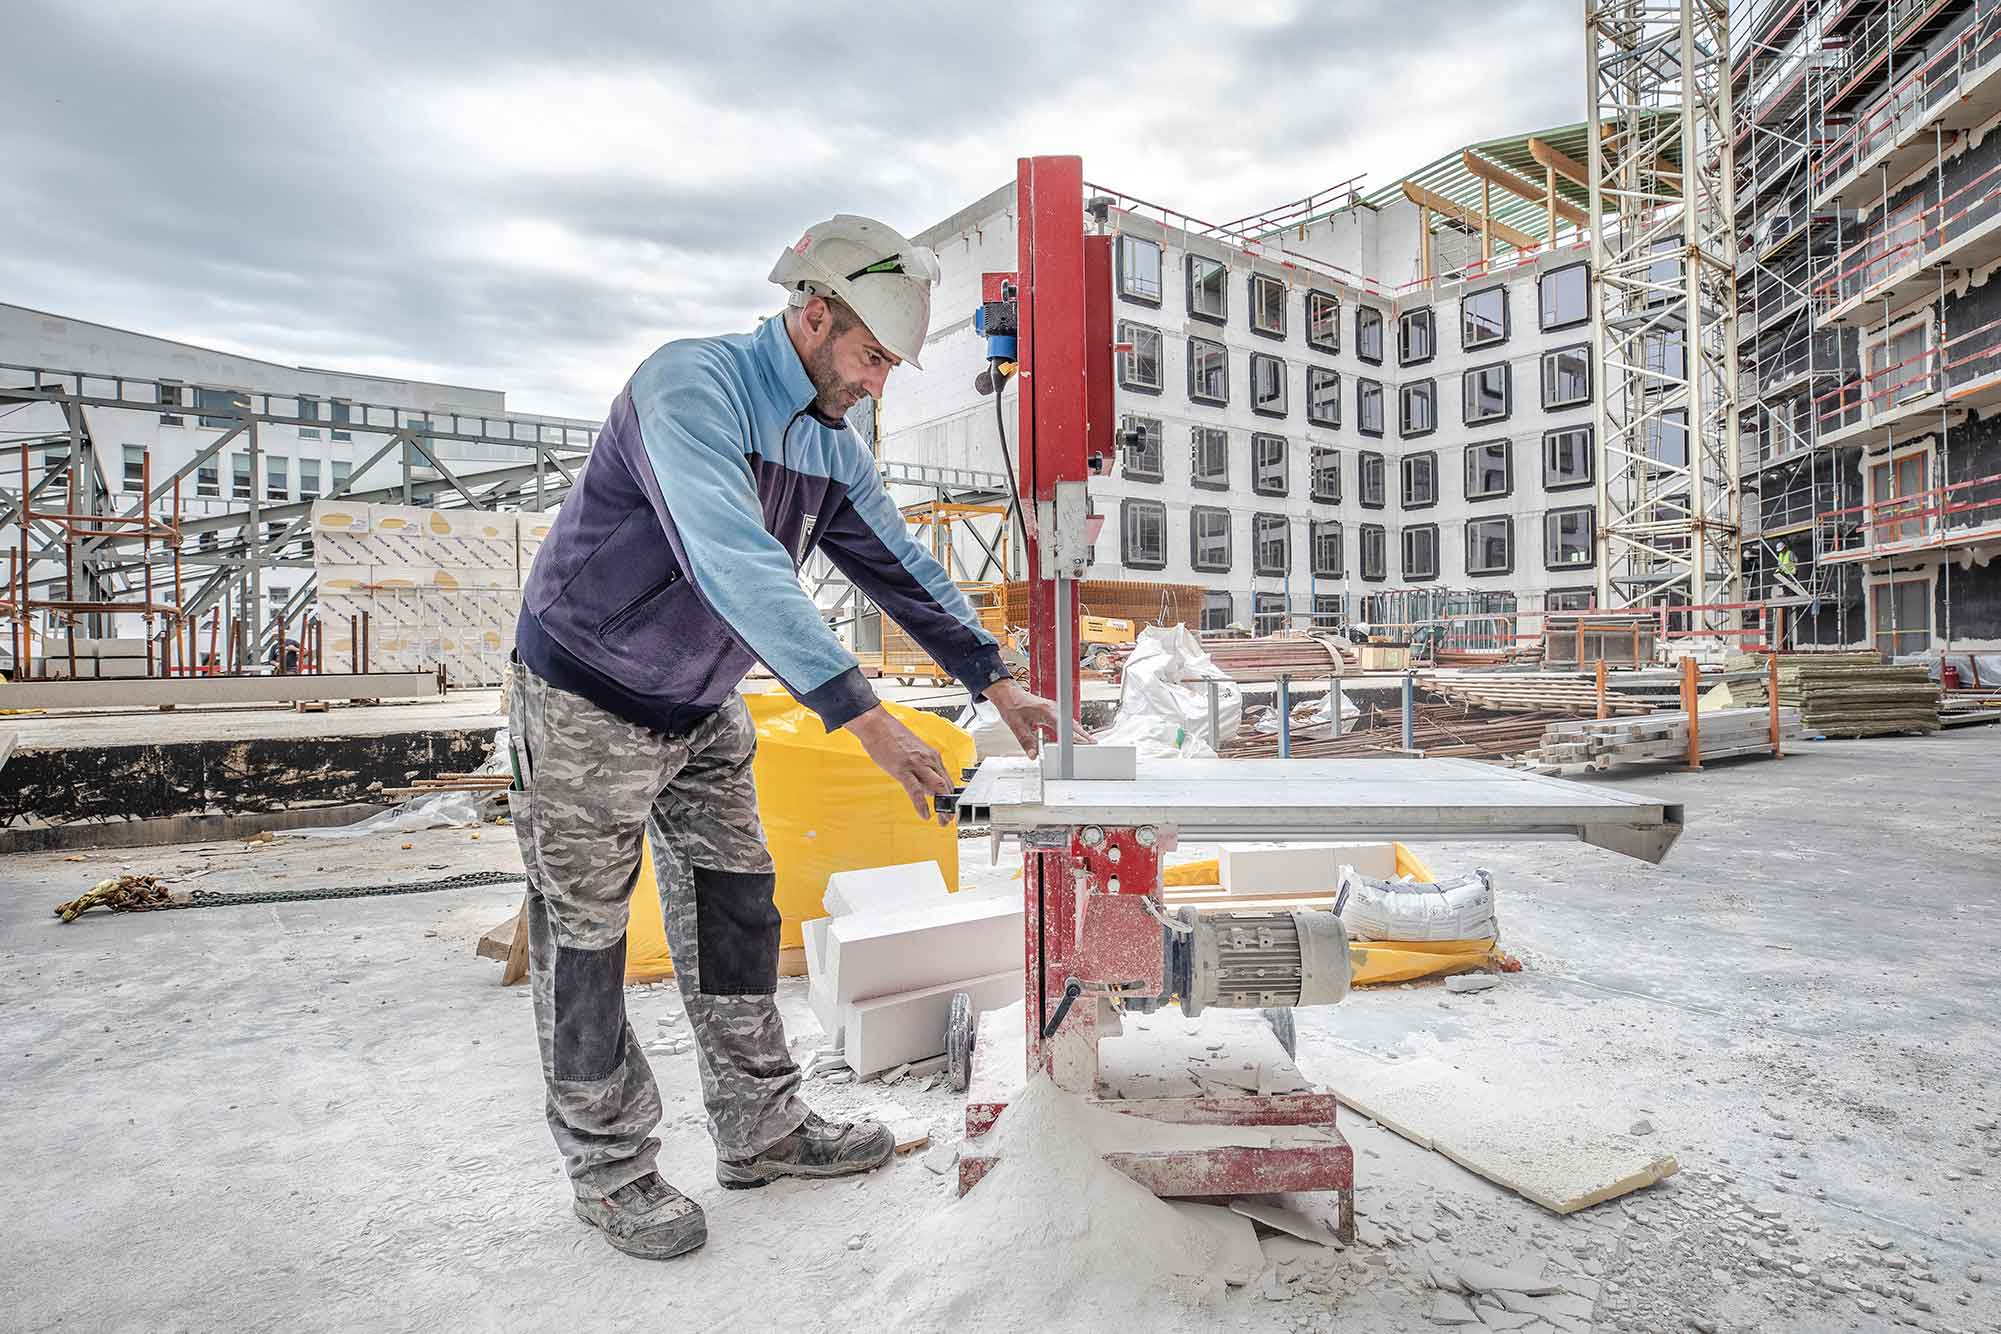 Construction_photography_pascal_vandecasteele48.jpg